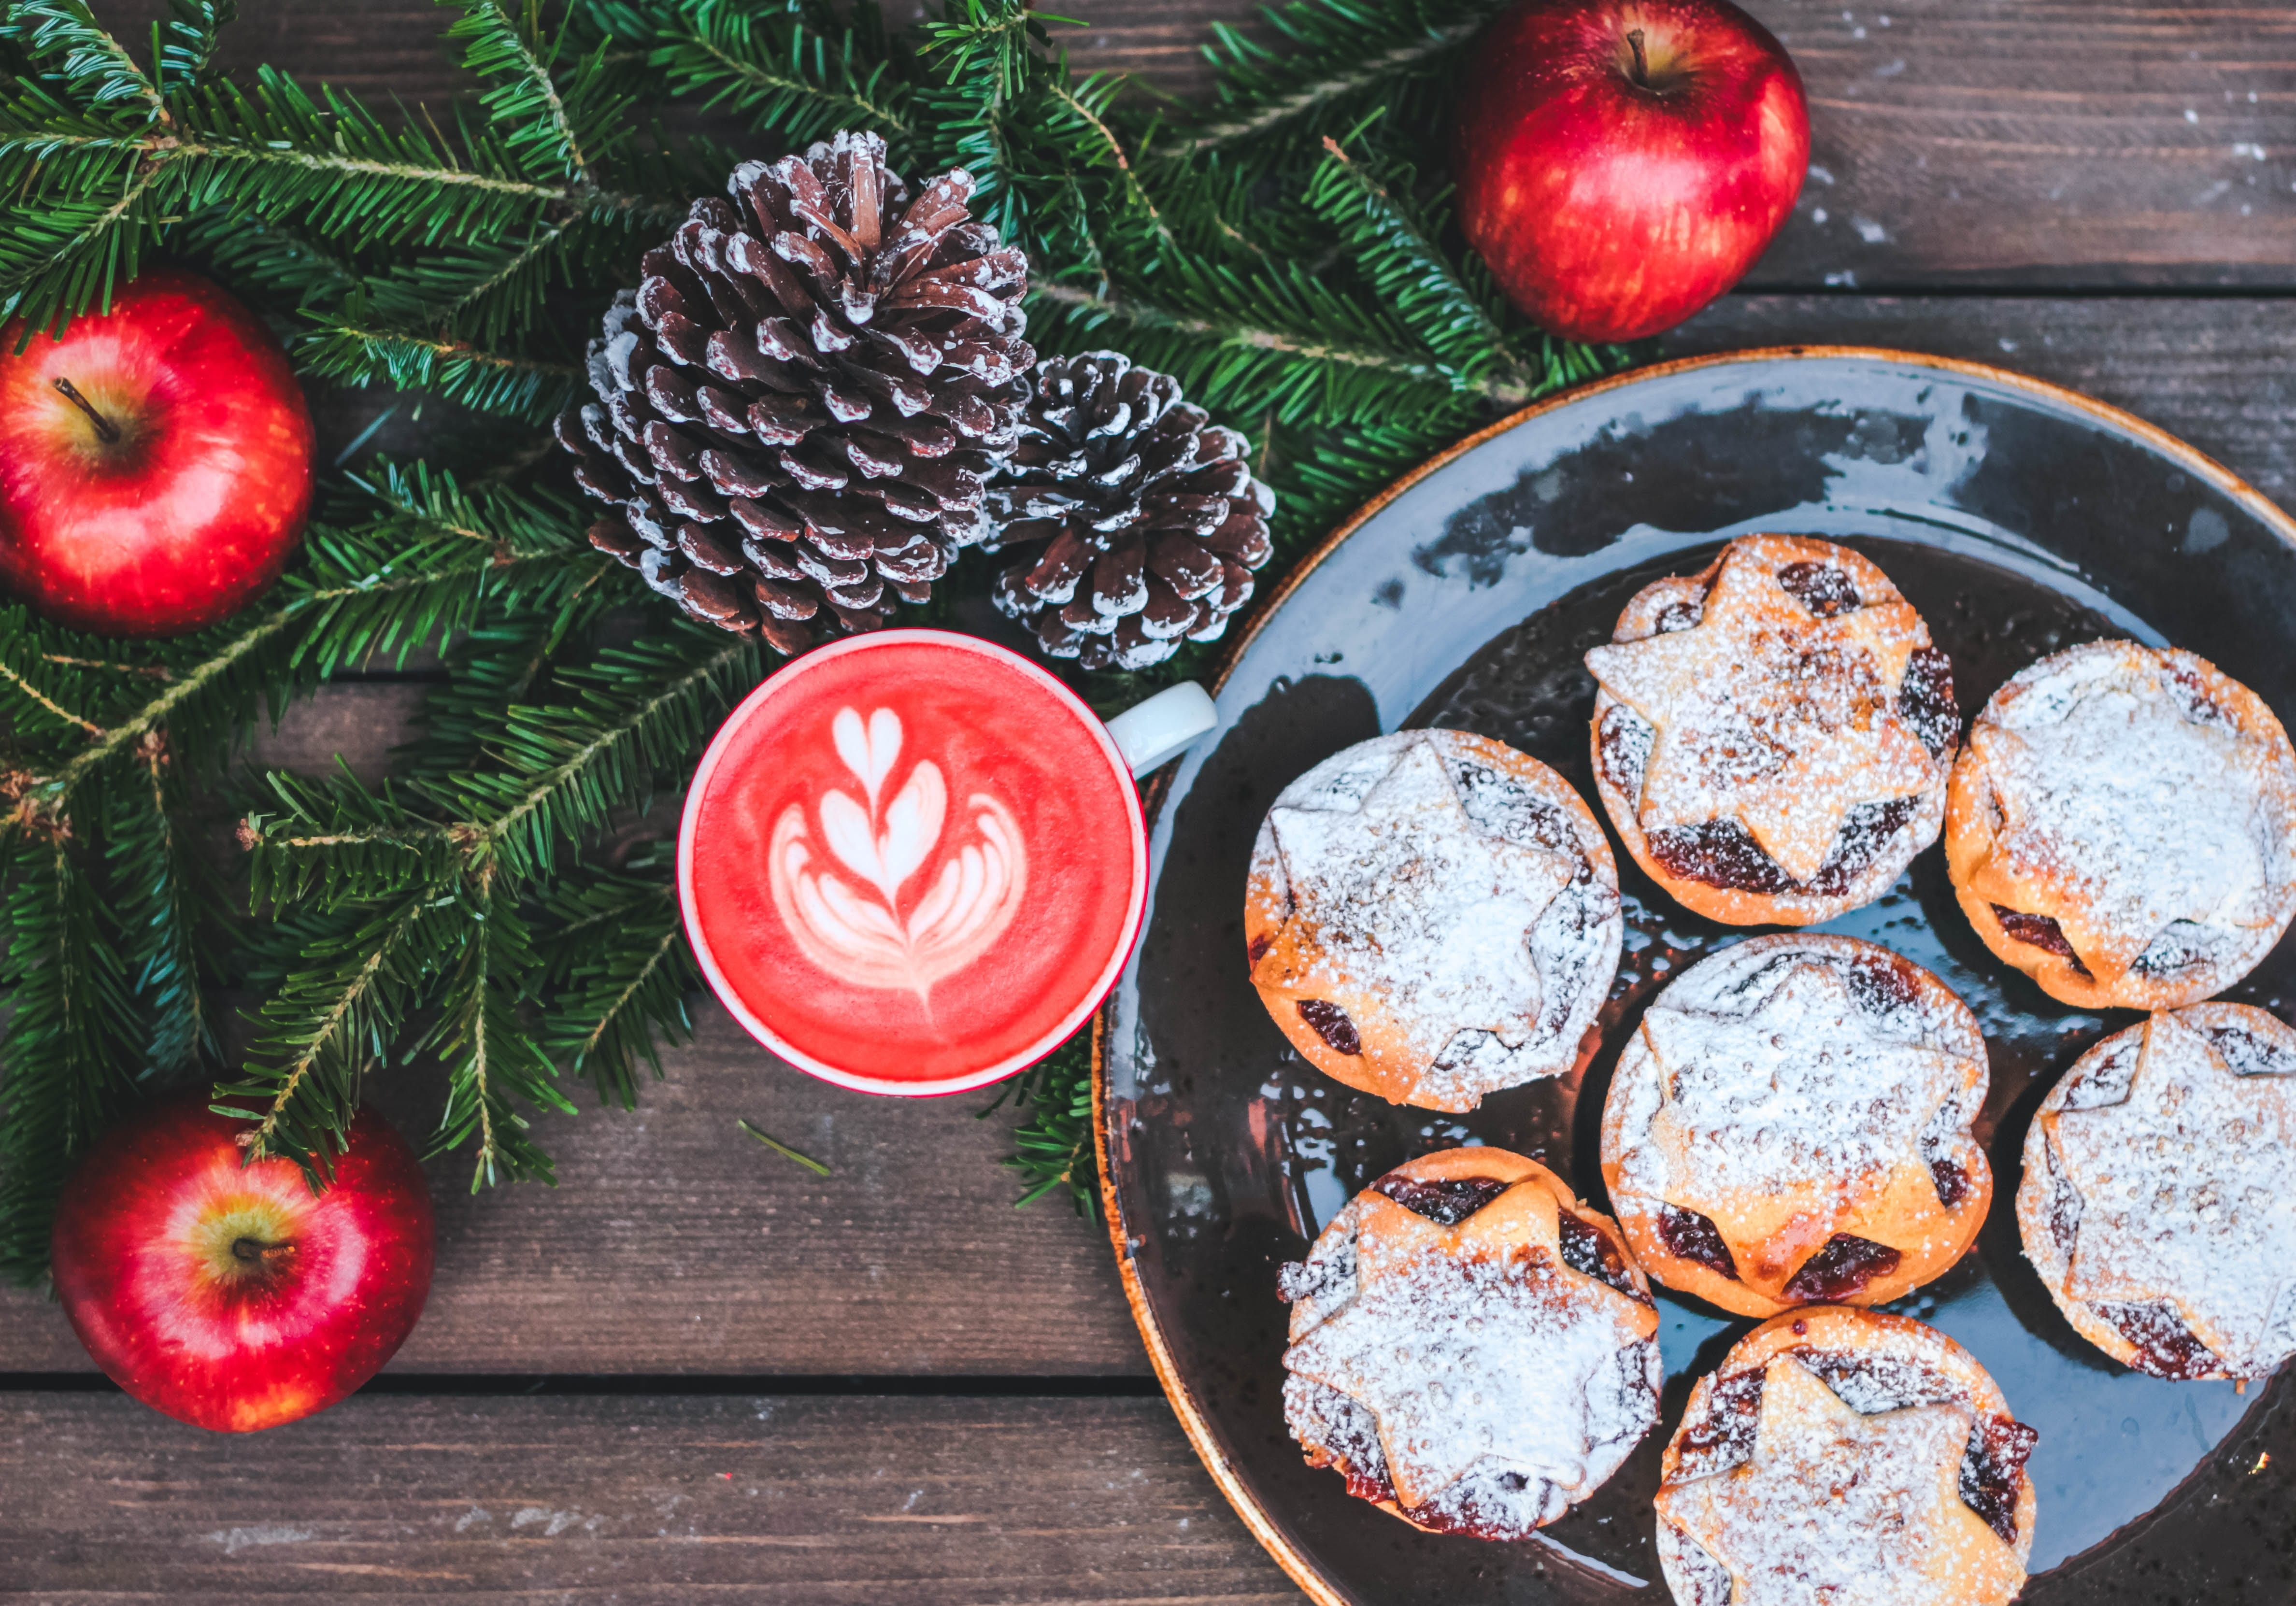 Pastries on black ceramic plate, red velvet cappuccino, red apples and pine cones on table; image by Toa Heftiba, via Unsplash.com.